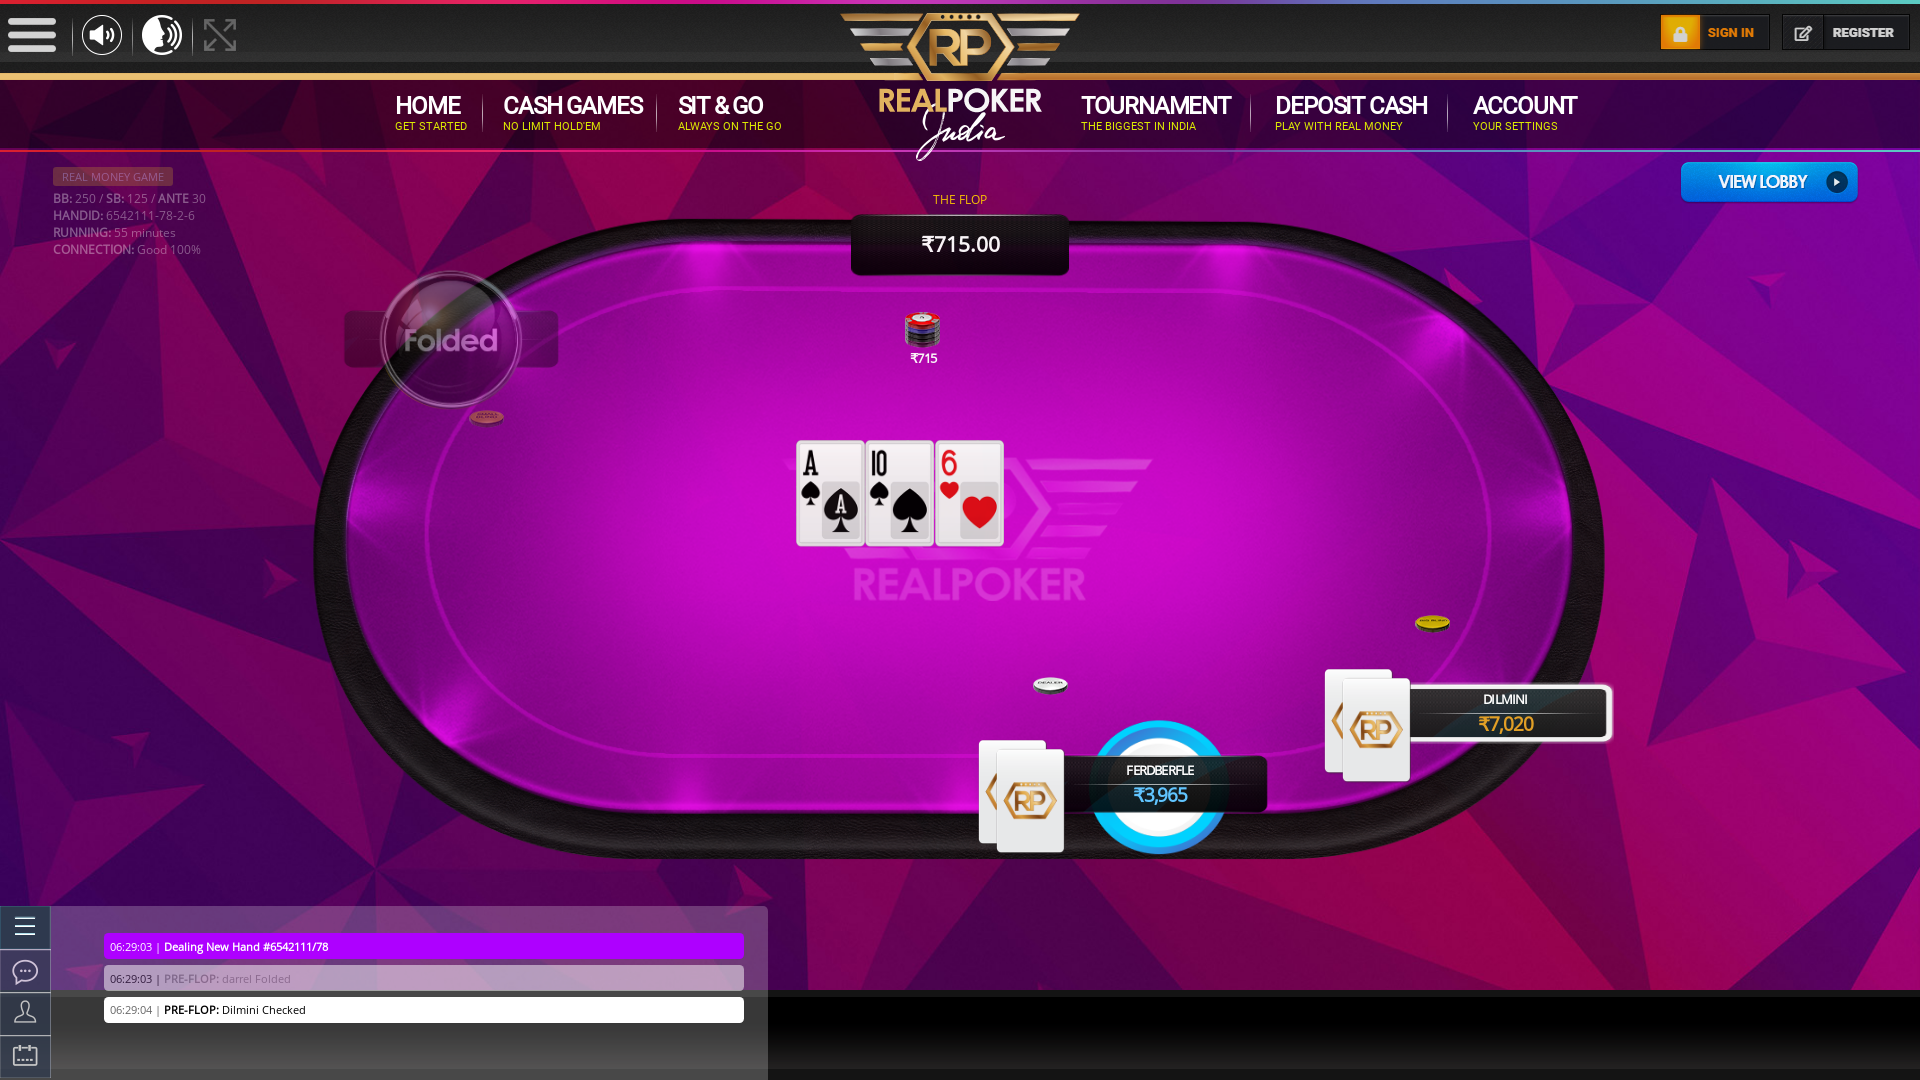 indian online poker on a 10 player table in the 55th minute match up